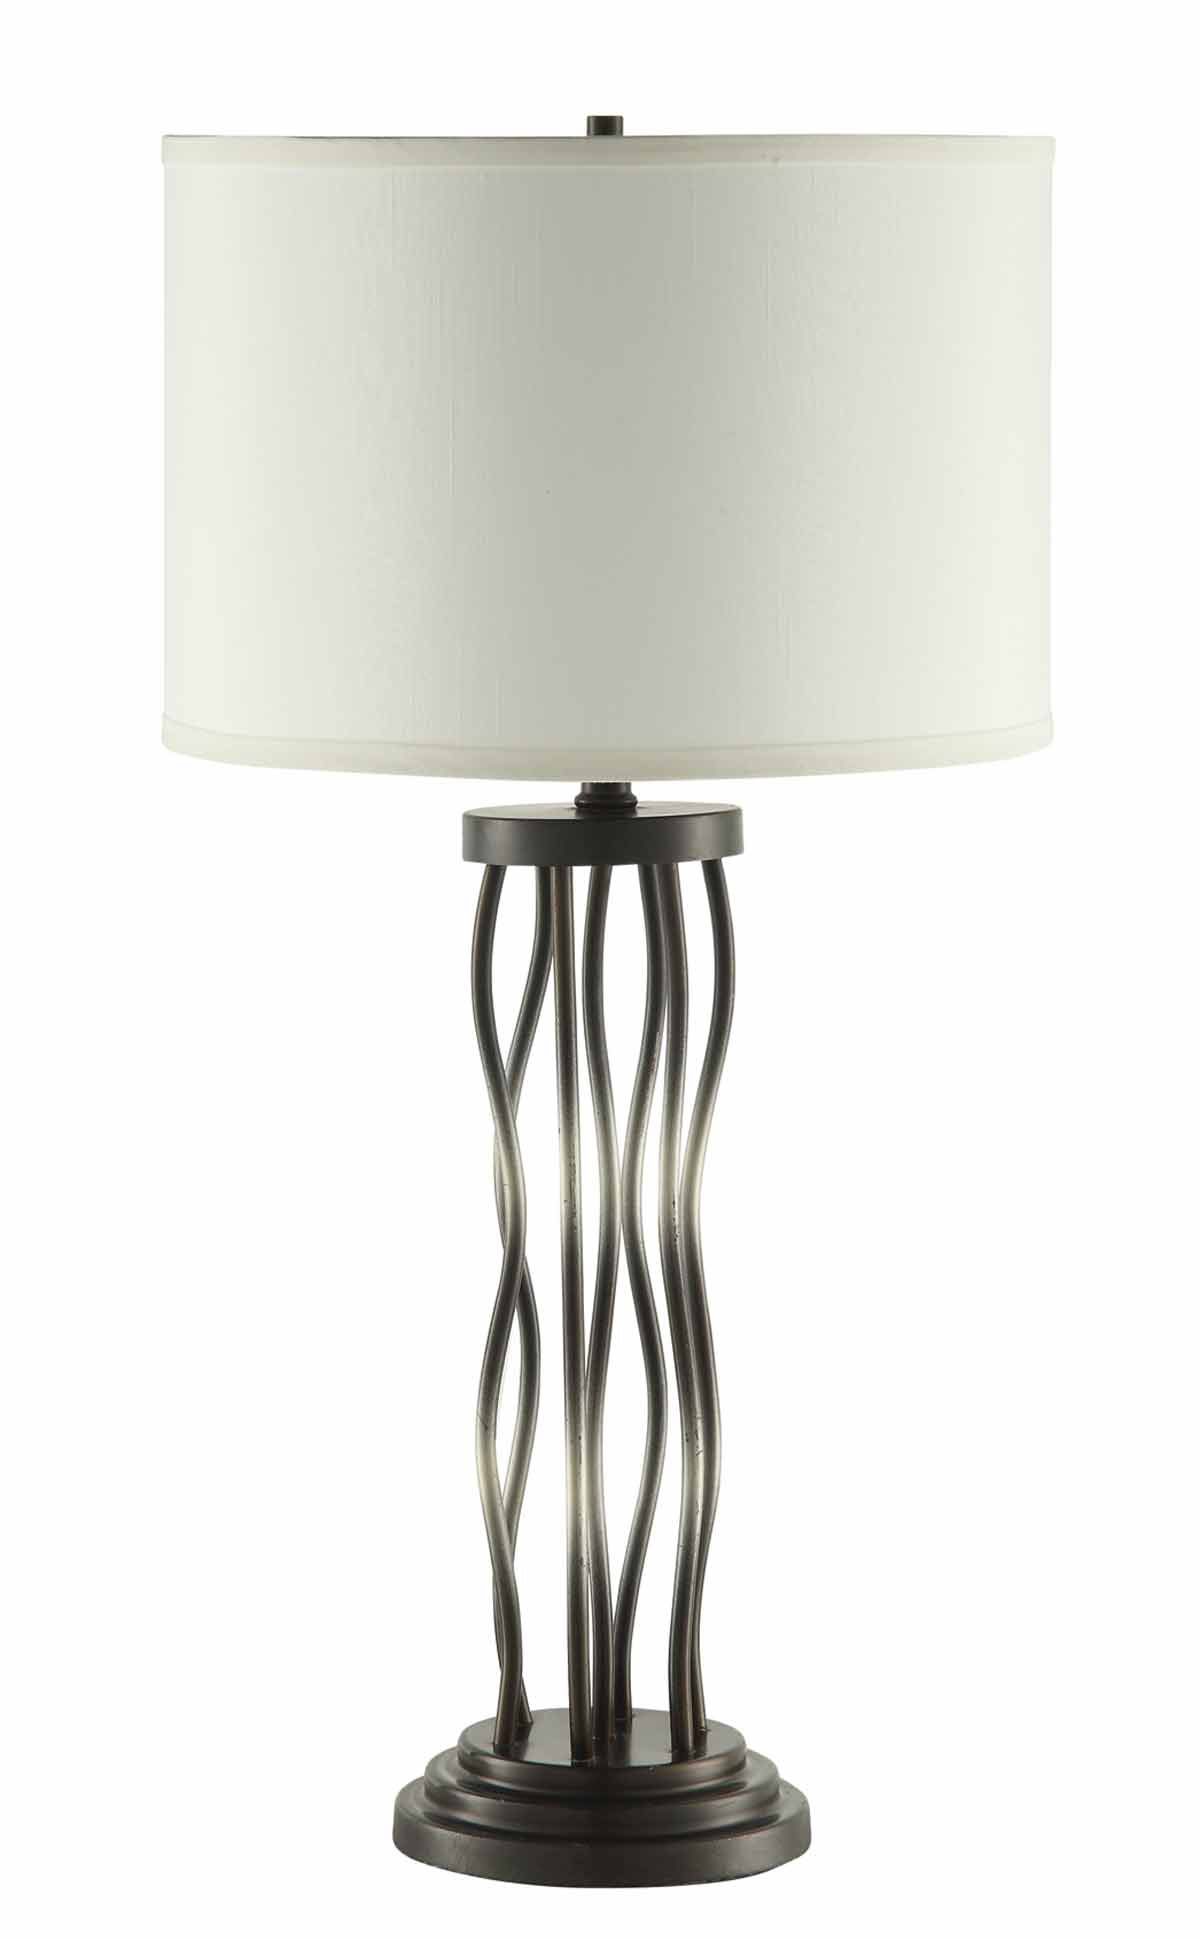 Coaster 901539 Table Lamp - Antique Bronze